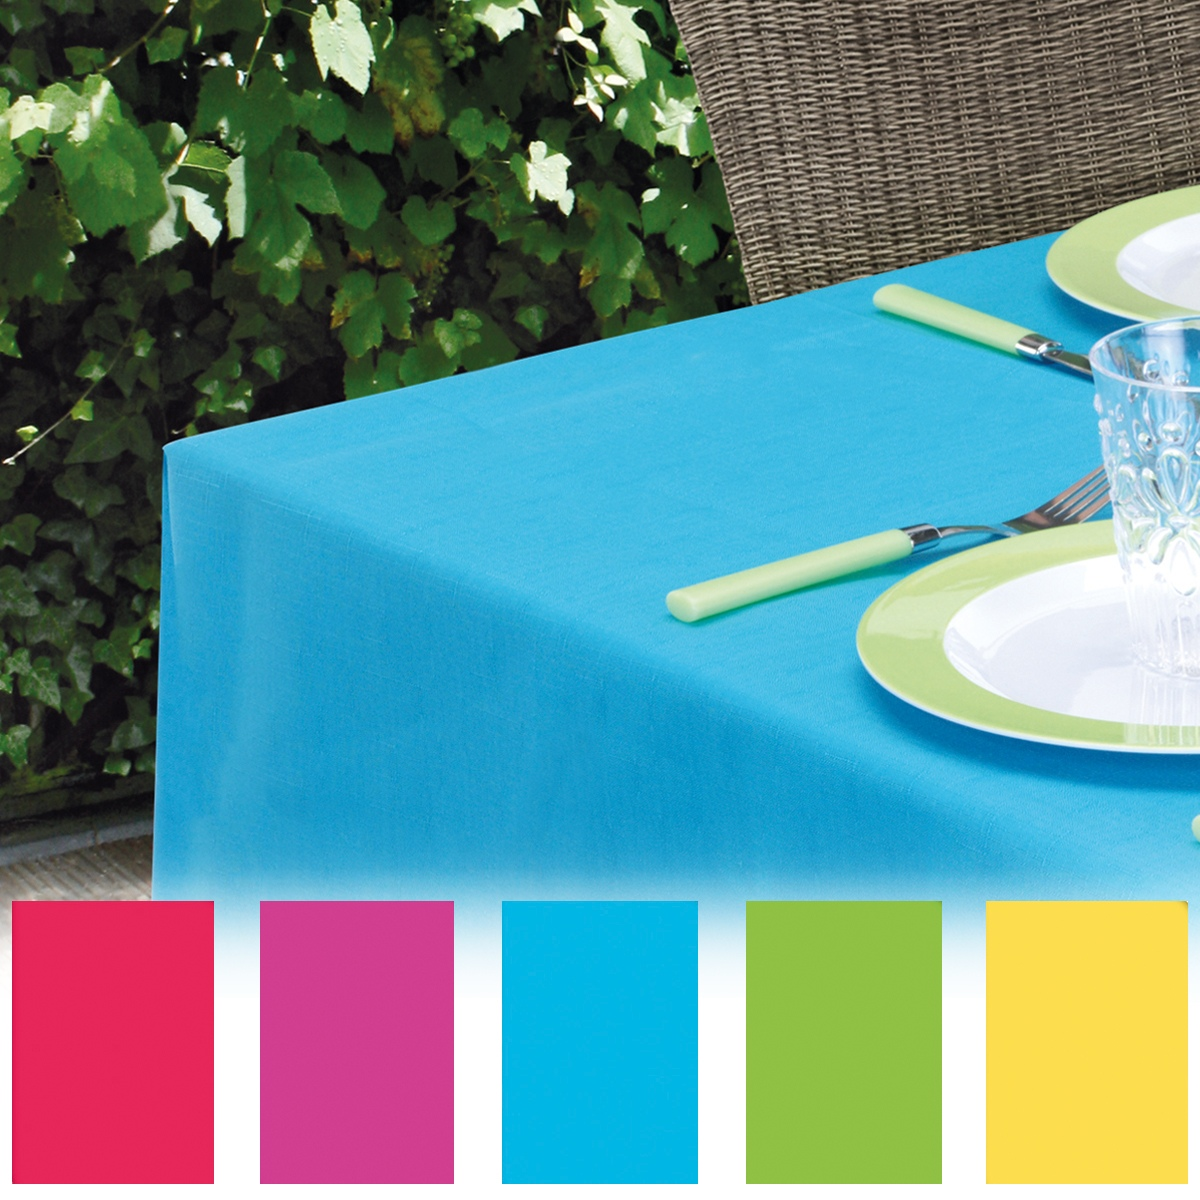 Charmant Details About Coloured Plastic Tablecloth Wipe Clean PVC Vinyl Wipeable  Party Outdoor Kids NEW